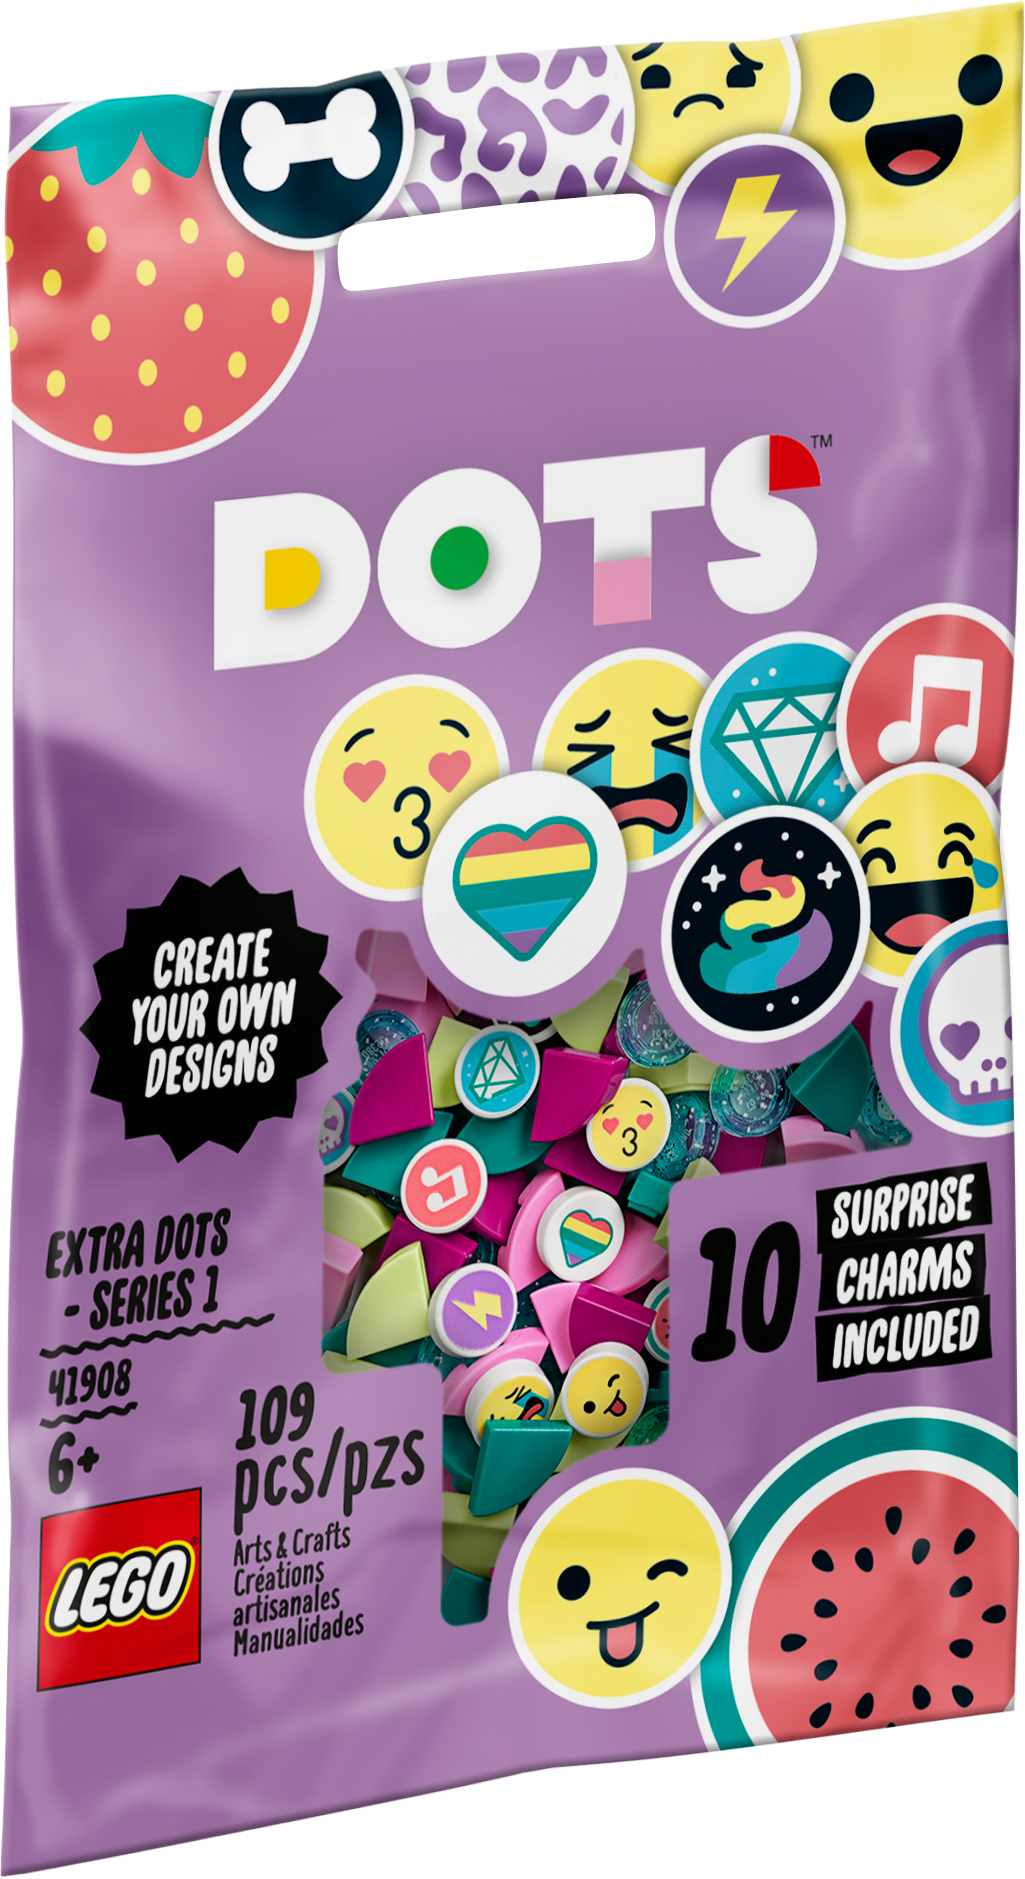 LEGO DOTS is making its U.S. debut at New York Toy Fair 2020 16